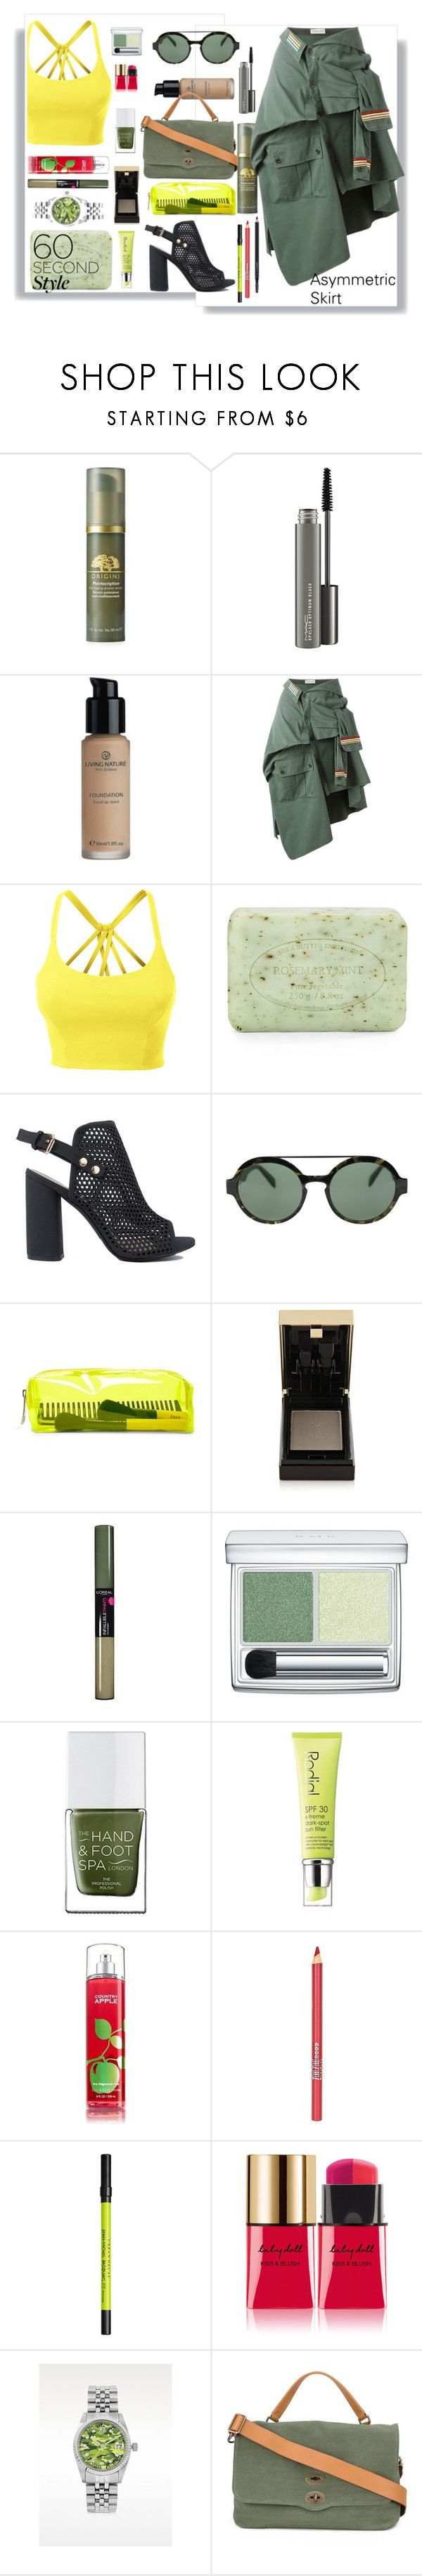 """""""Summer Skirt and Booties"""" by beleev ❤ liked on Polyvore featuring Origins, MAC Cosmetics, Faith Connexion, LE3NO, Pré de Provence, Italia Independent, Forever 21, Yves Saint Laurent, L'Oréal Paris and RMK"""